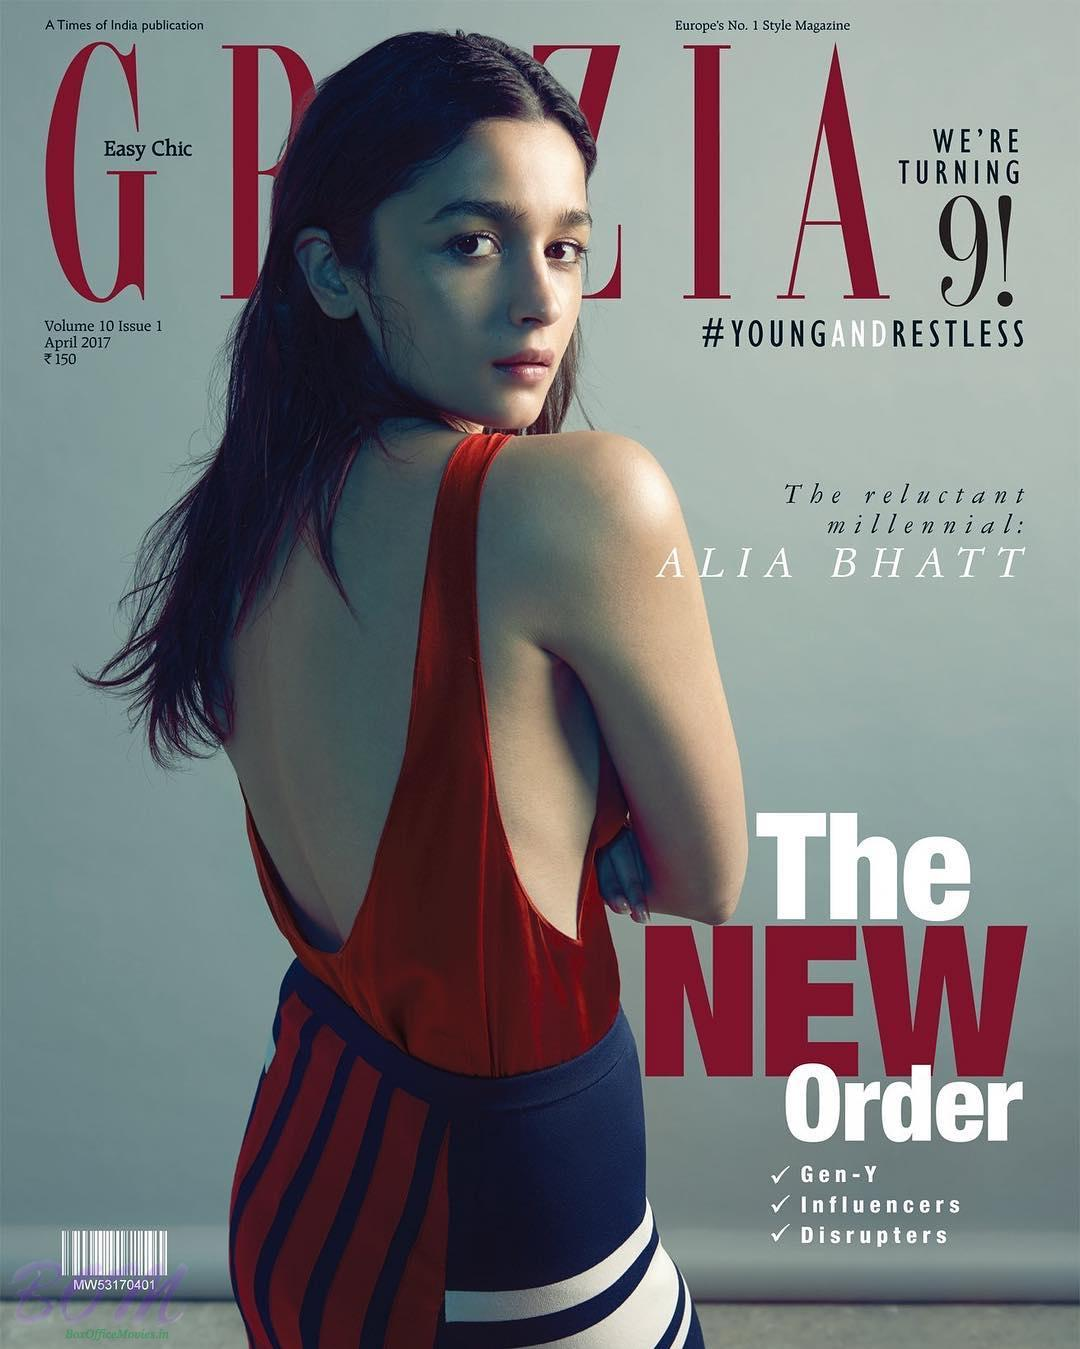 Alia Bhatt cover girl for Grazia style Magazine April 2017 issue